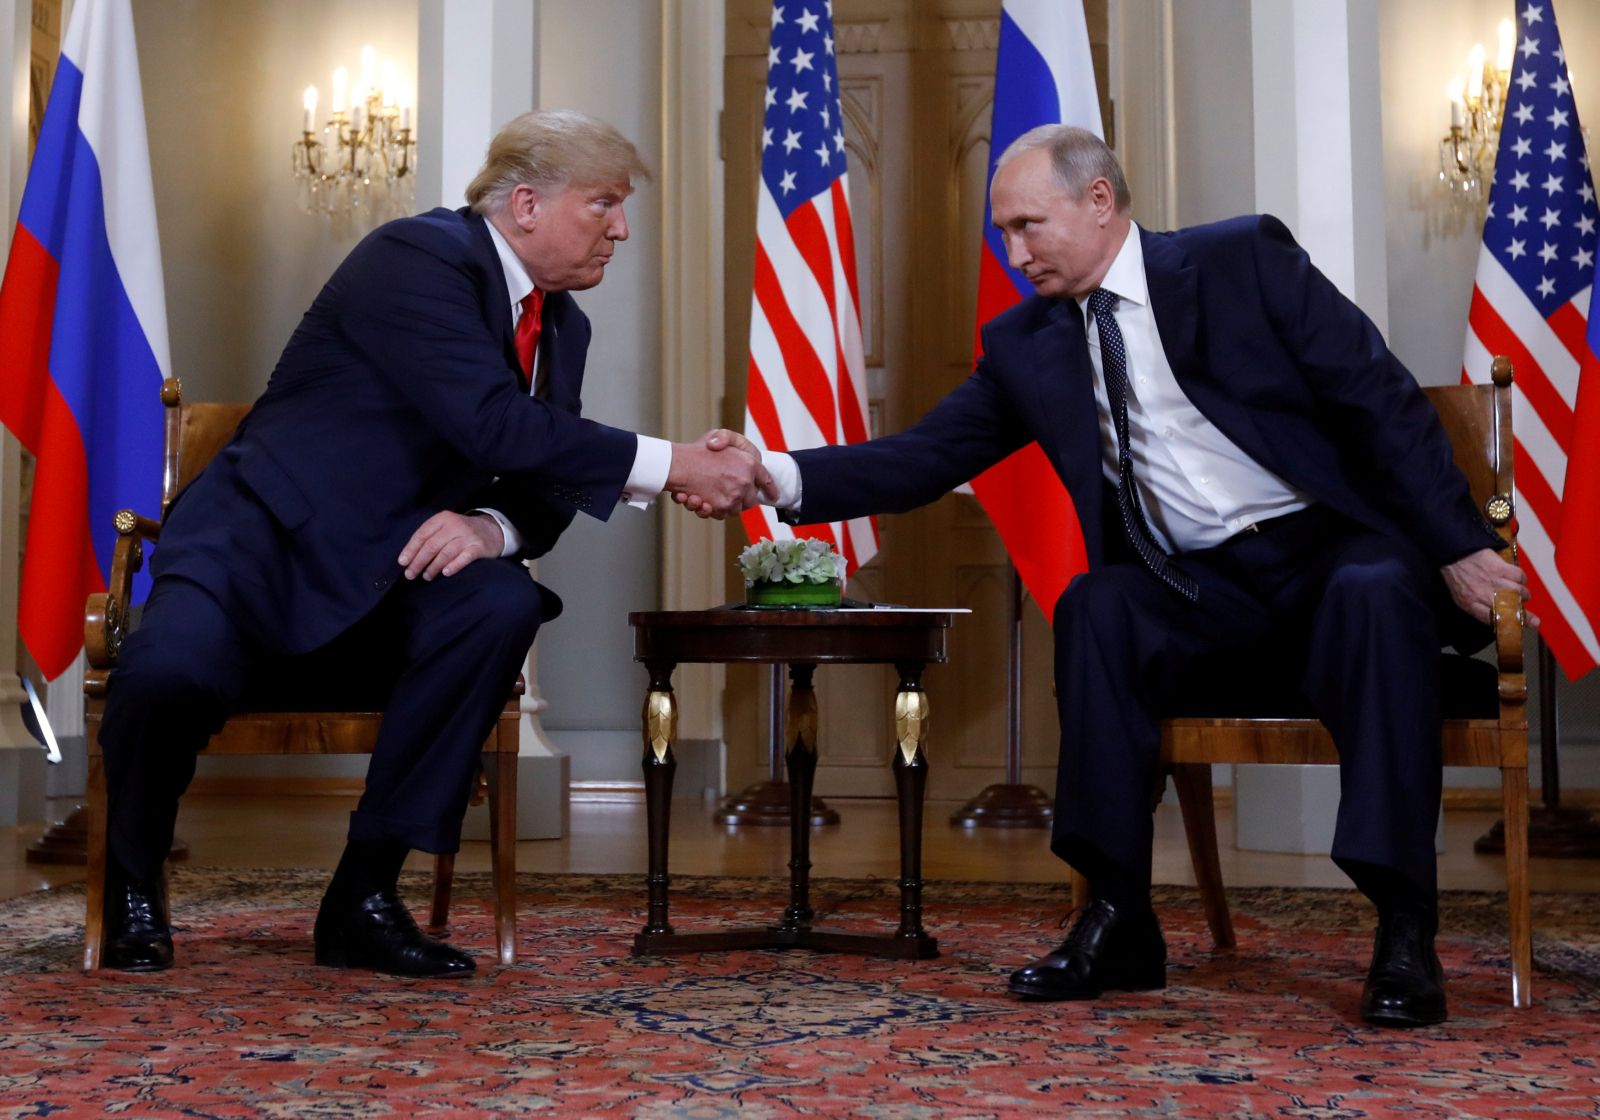 Trump meets Putin at Helsinki